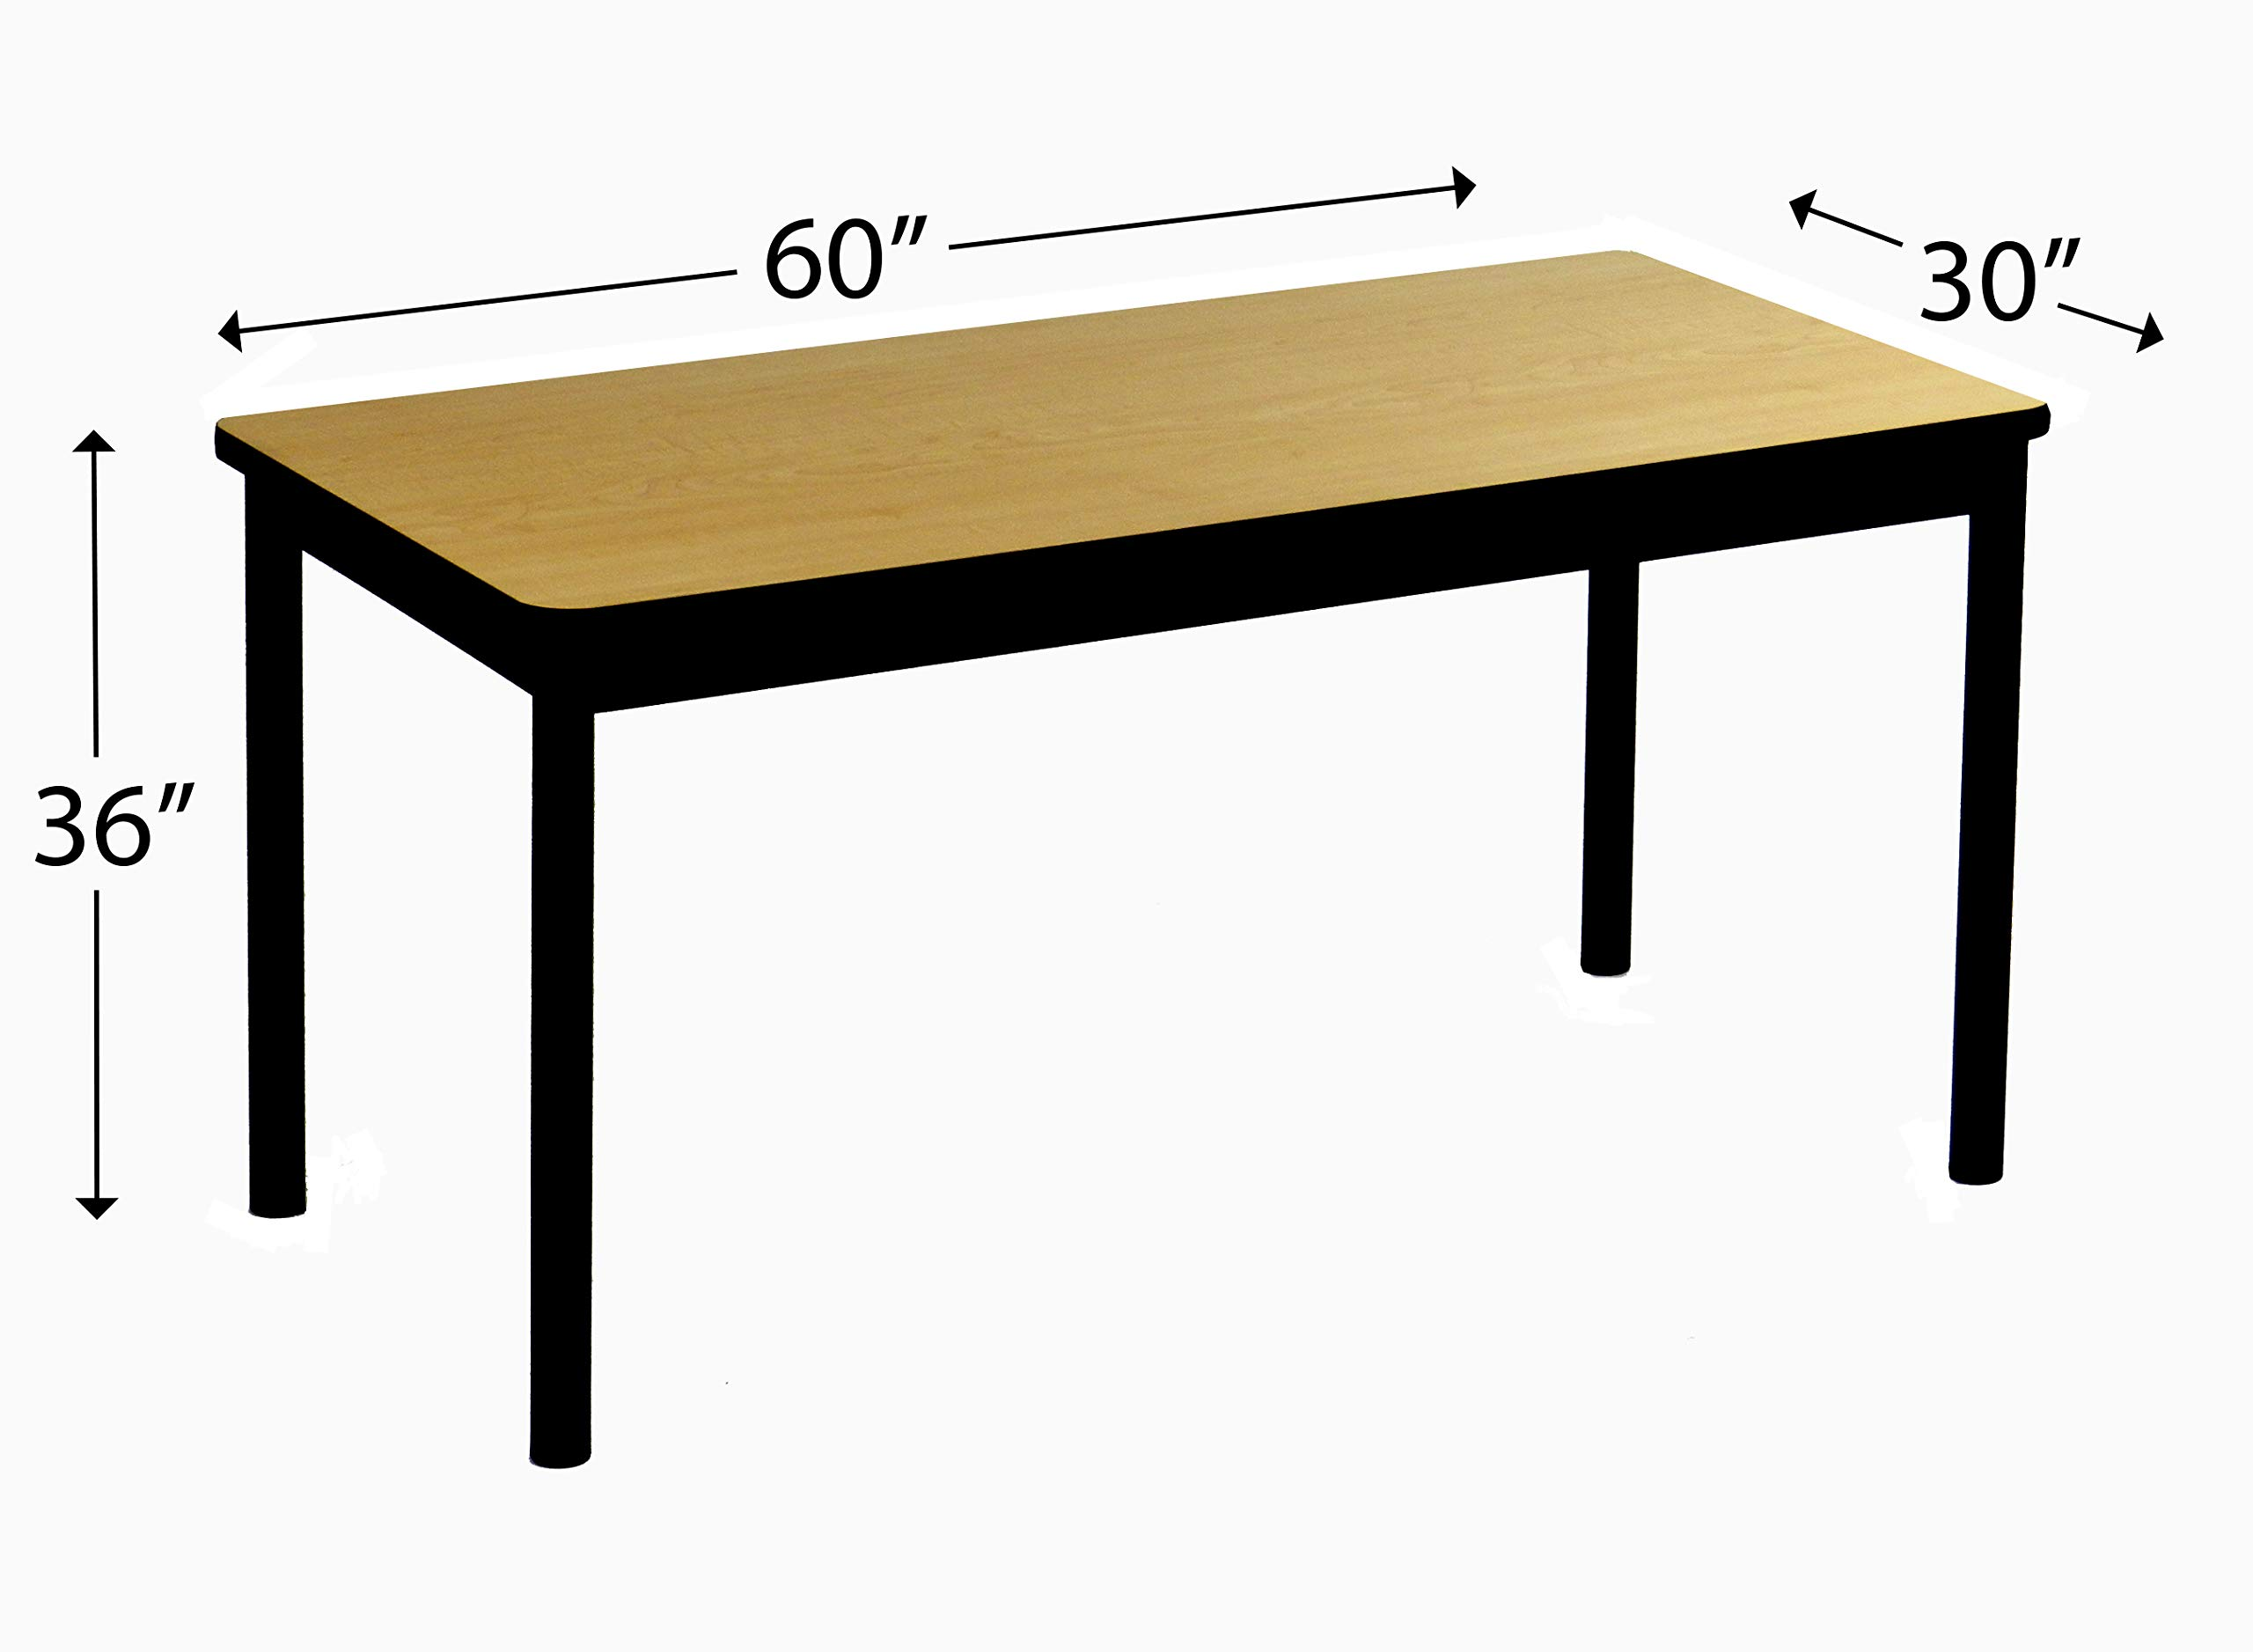 Correll 36'' High Standing / Stool Height Utility Table, 30'' x 60'' Fusion Maple High-Pressure Laminate Top with Black Frame , Rock Solid Commercial Quality (LT3060-16) by Correll (Image #4)